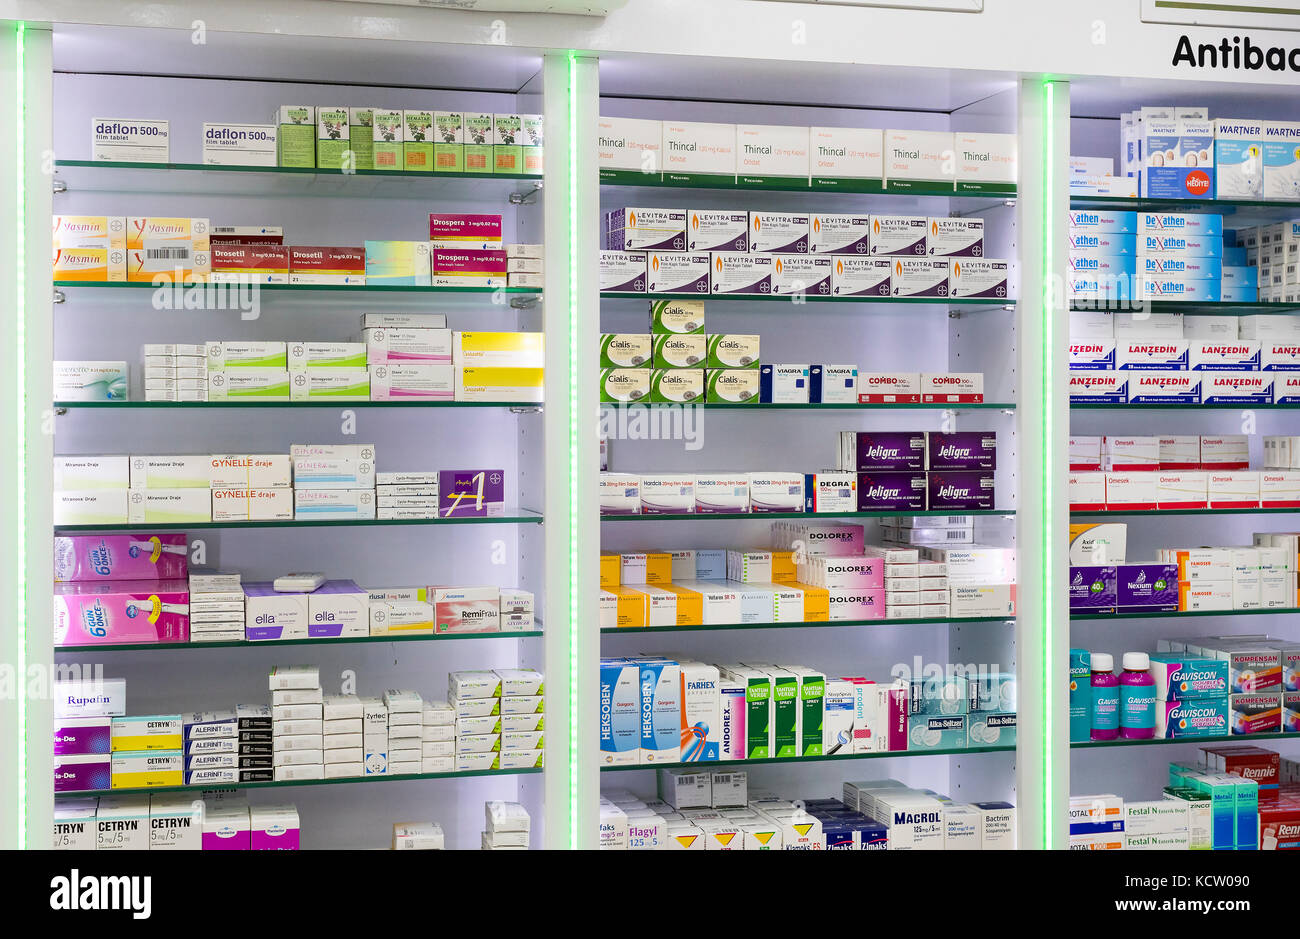 SIDE, TURKEY   4 OCTOBER , 2017: Pharmacy Cabinets With Medicines And Drugs  Tablets And Food Additives